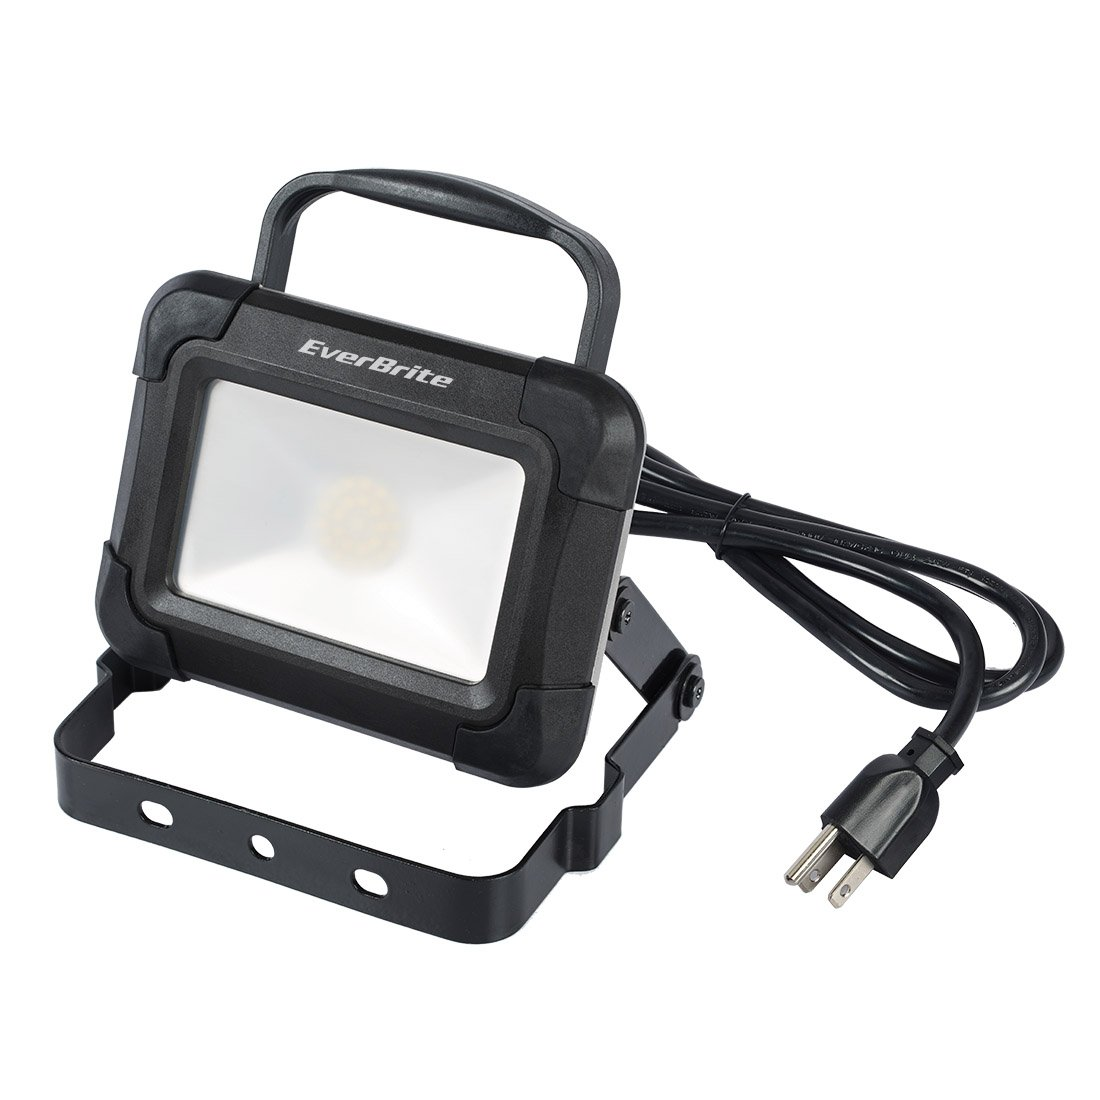 EverBrite Work Light 1000 Lumen 13W Super Bright LED Flood Light with Folding Stand Hook Impact Resistance with 6FT Power Cord